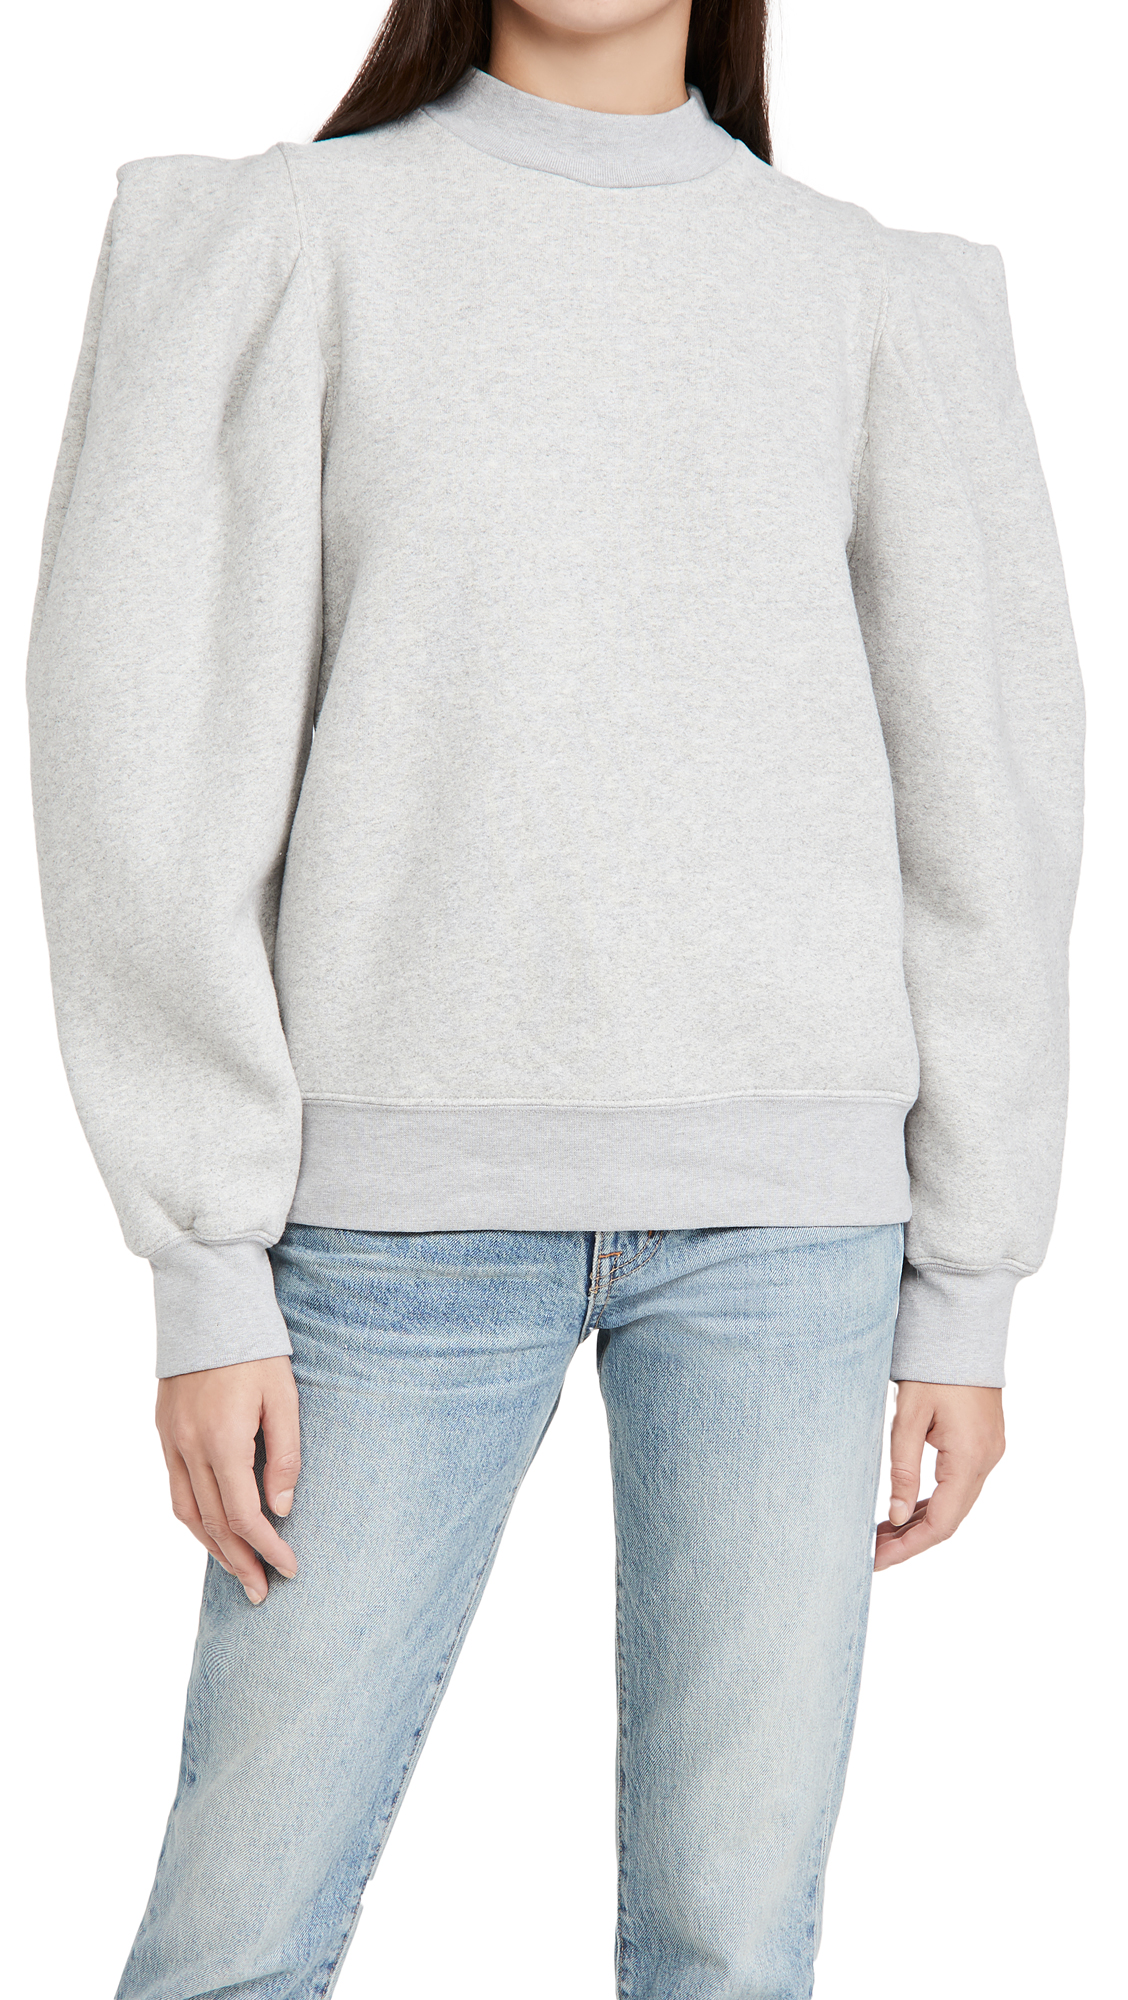 Agolde FOLDED SLEEVE SWEATSHIRT